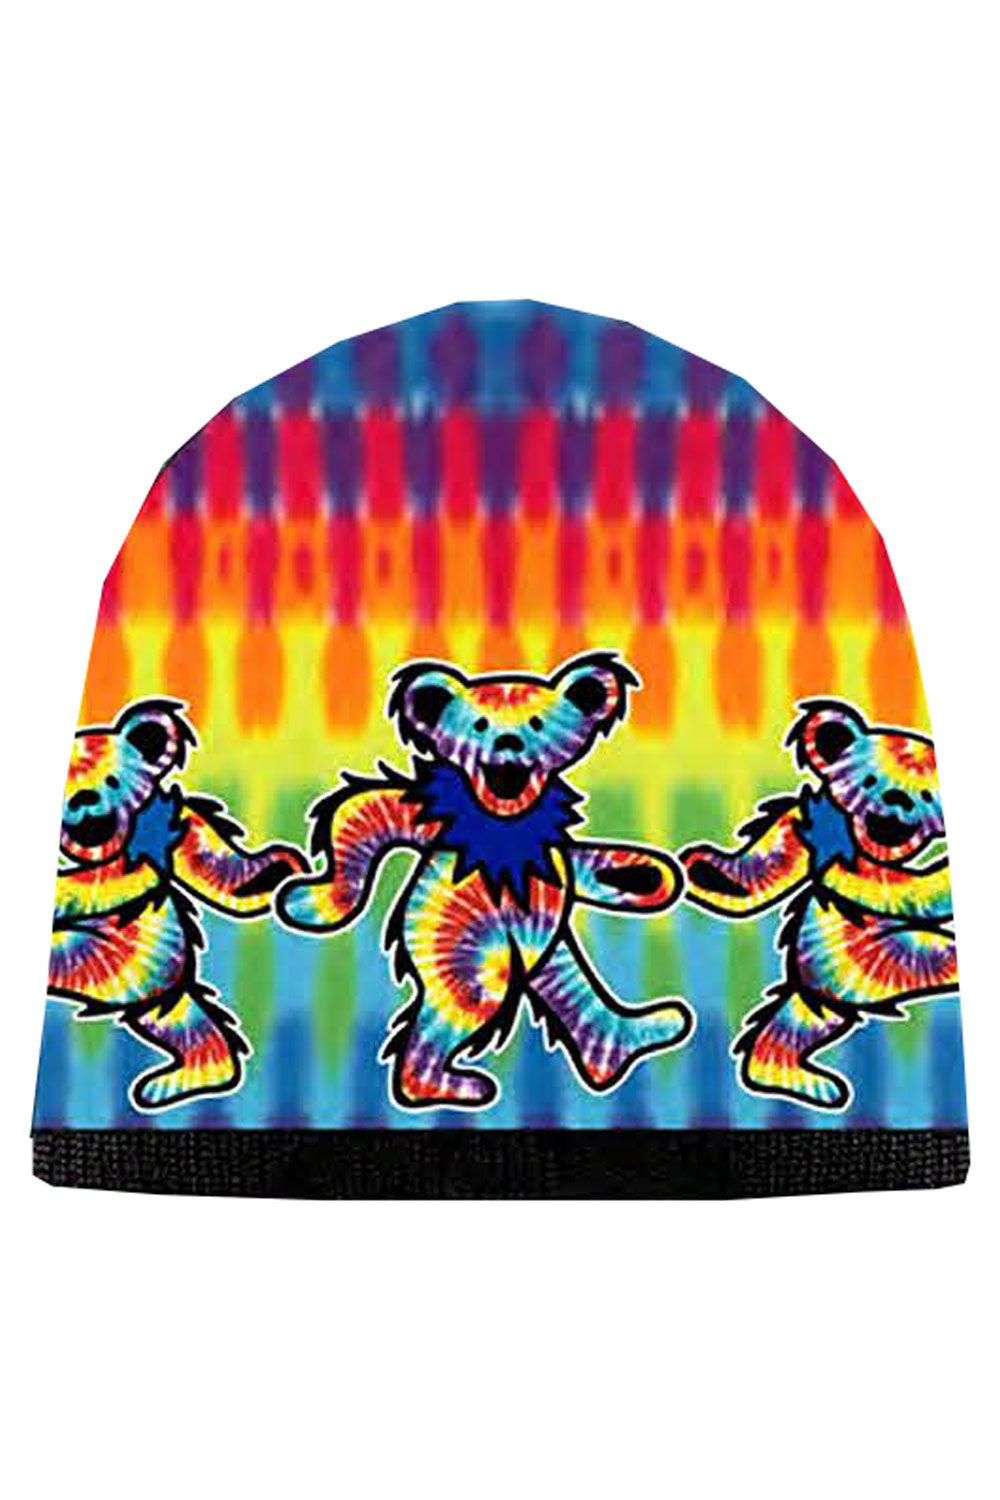 293fd6c8c65 Grateful Dead Tie Dye Bears Knit Beanie Hat - eDeadShop.com